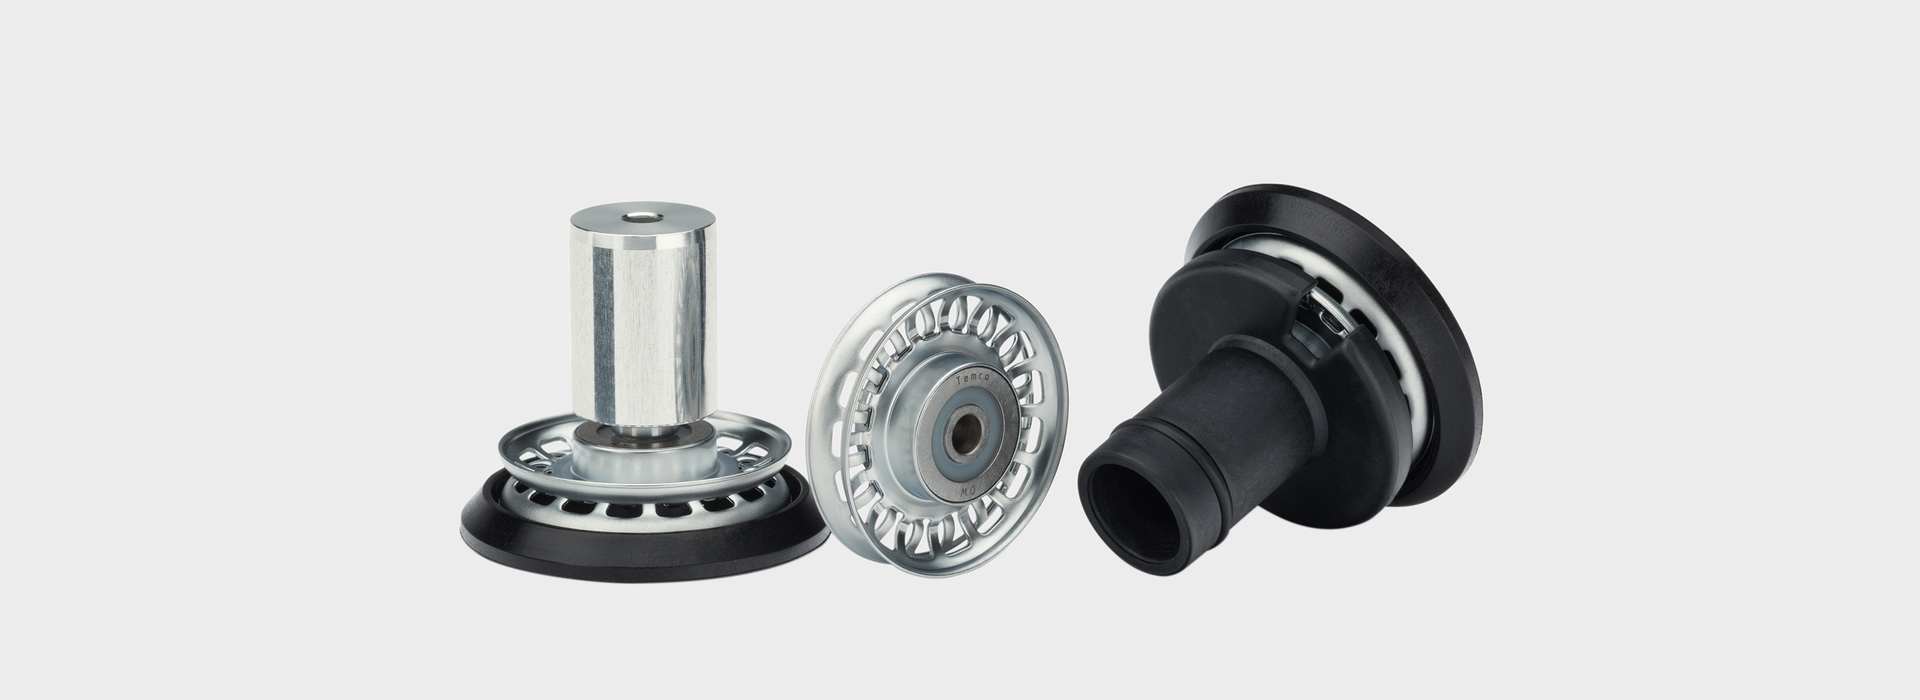 Temco Twist Stoppers